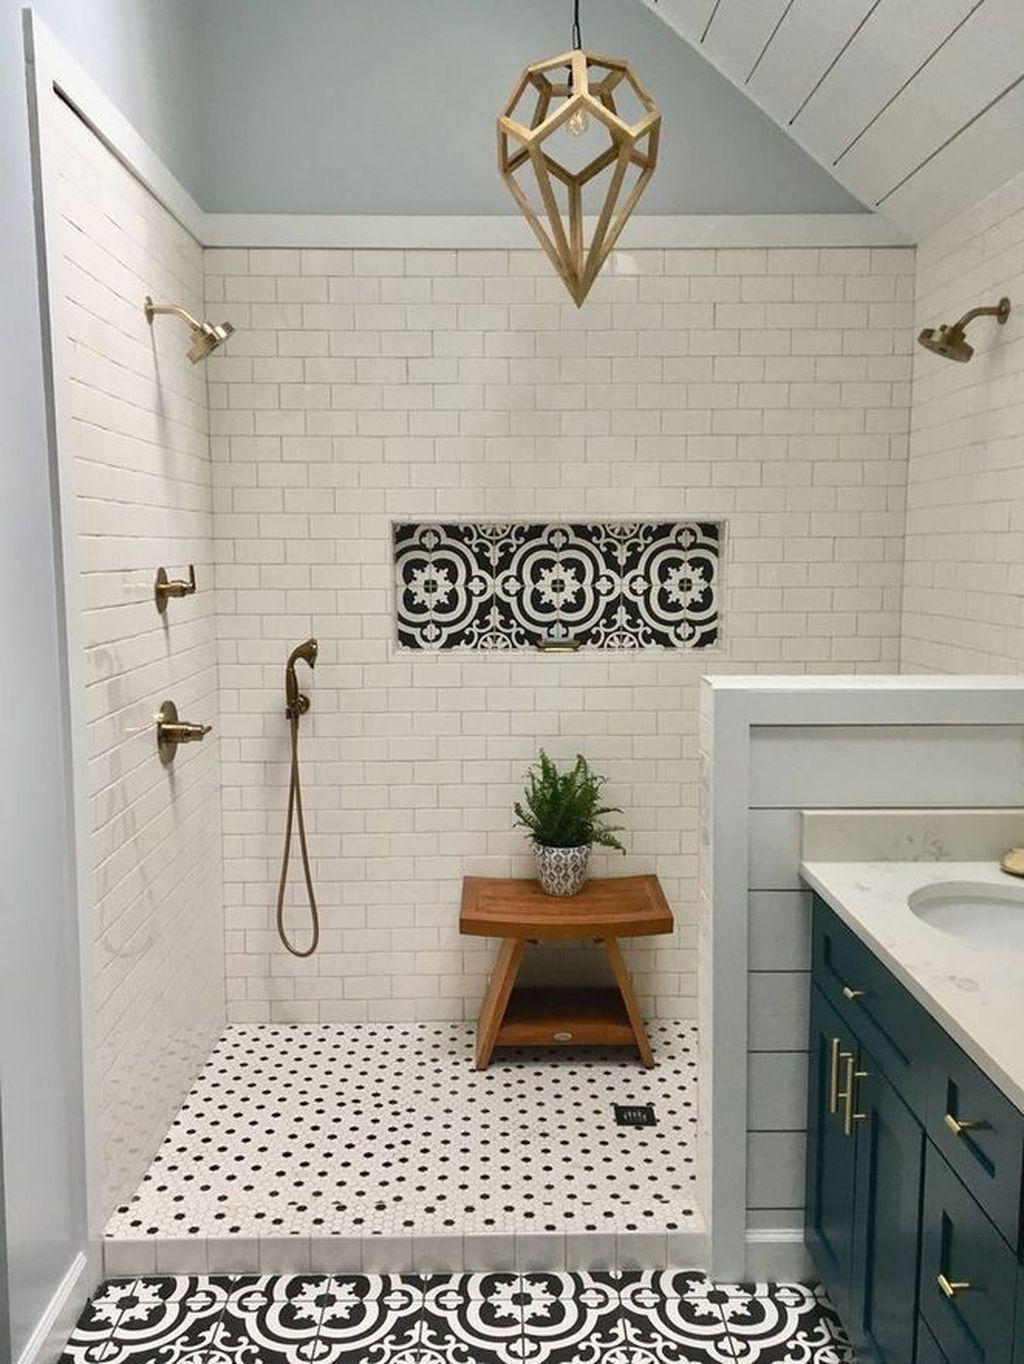 36 Exciting Small Bathroom Ideas Makeover Showerremodel The Bathroom Is Your Domain Of Relief It Bathroom Tile Designs Best Bathroom Tiles Bathrooms Remodel